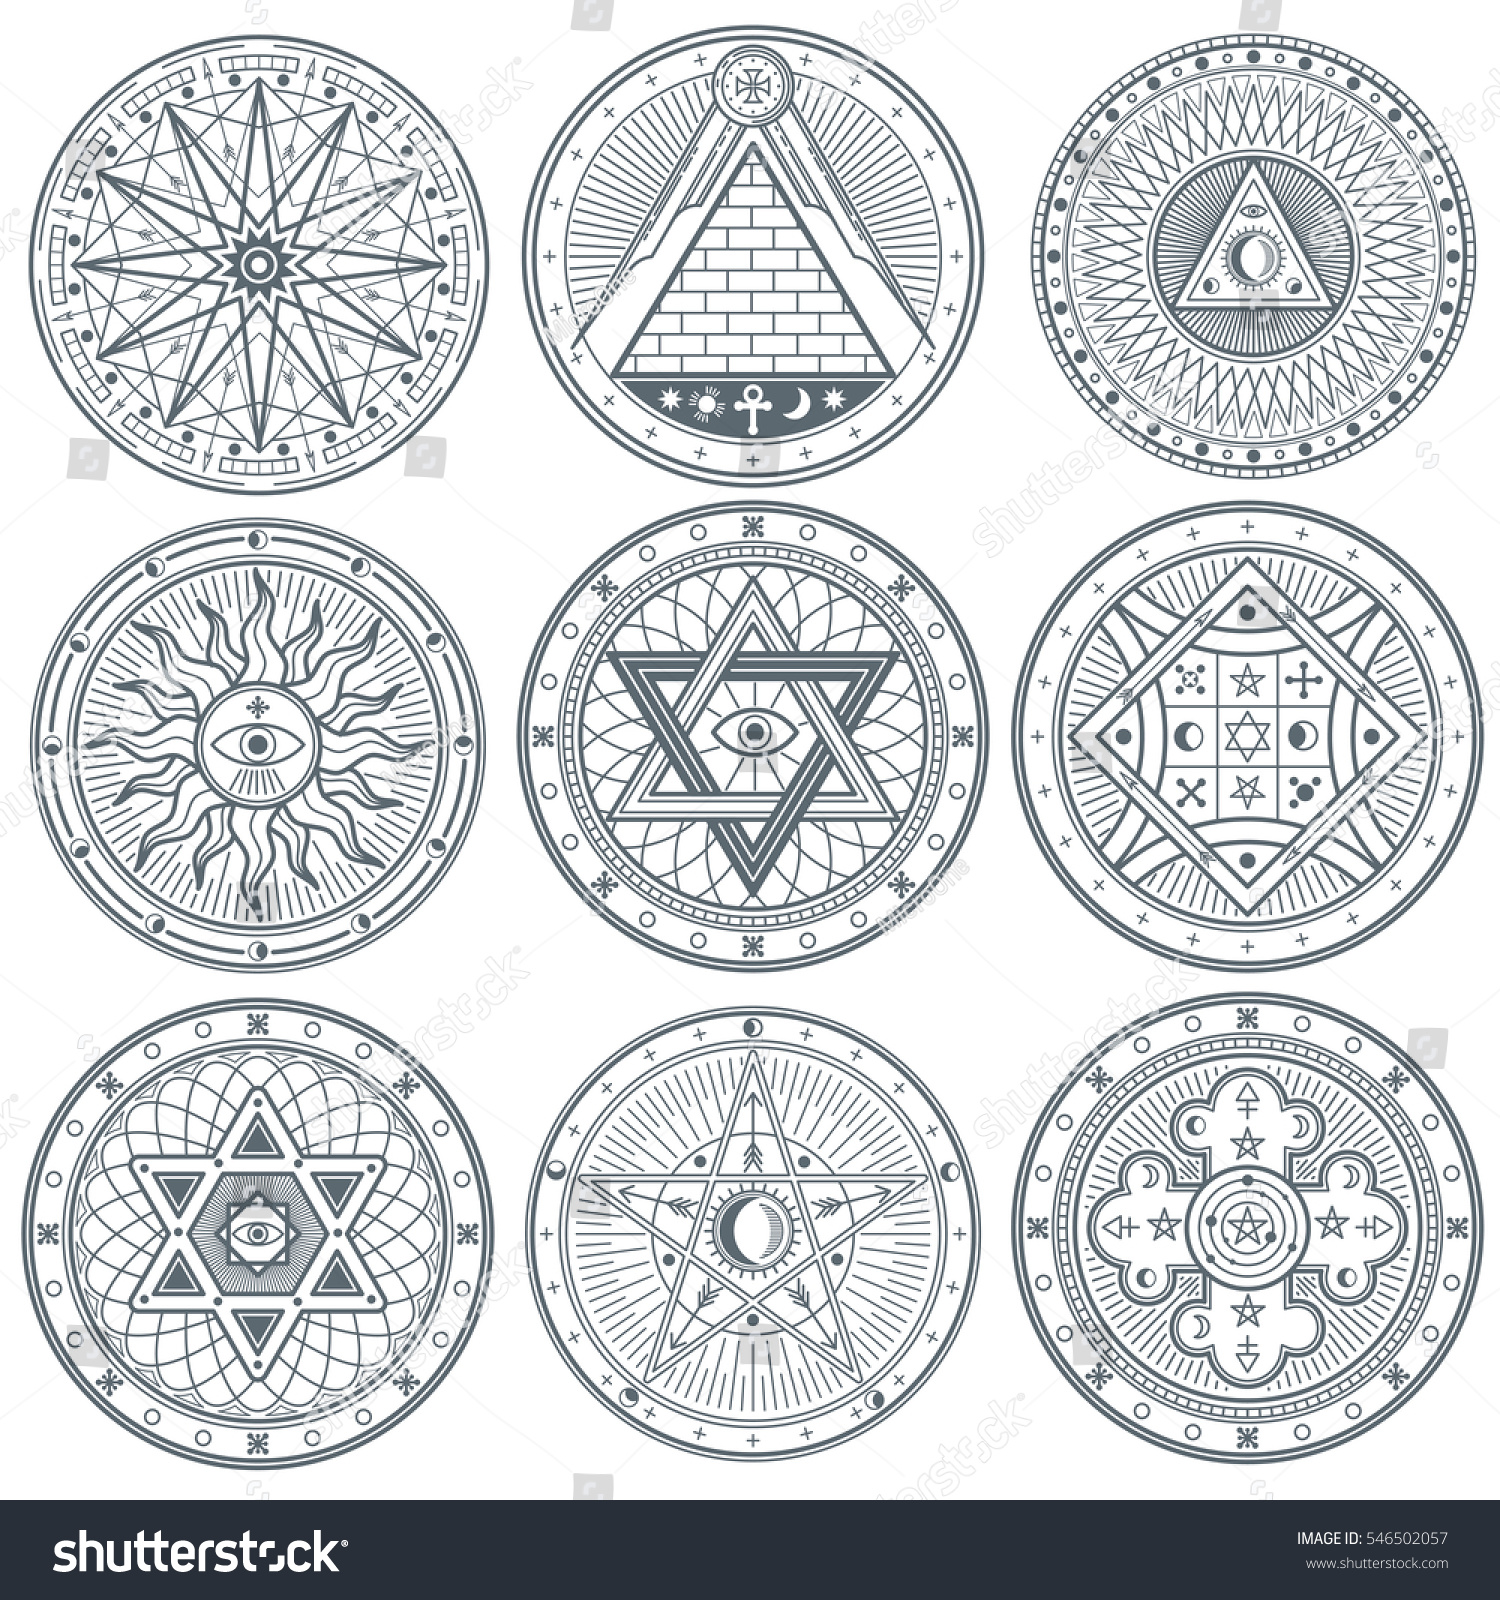 Mystery witchcraft occult alchemy mystical vintage stock vector mystery witchcraft occult alchemy mystical vintage gothic vector tattoo symbols biocorpaavc Choice Image